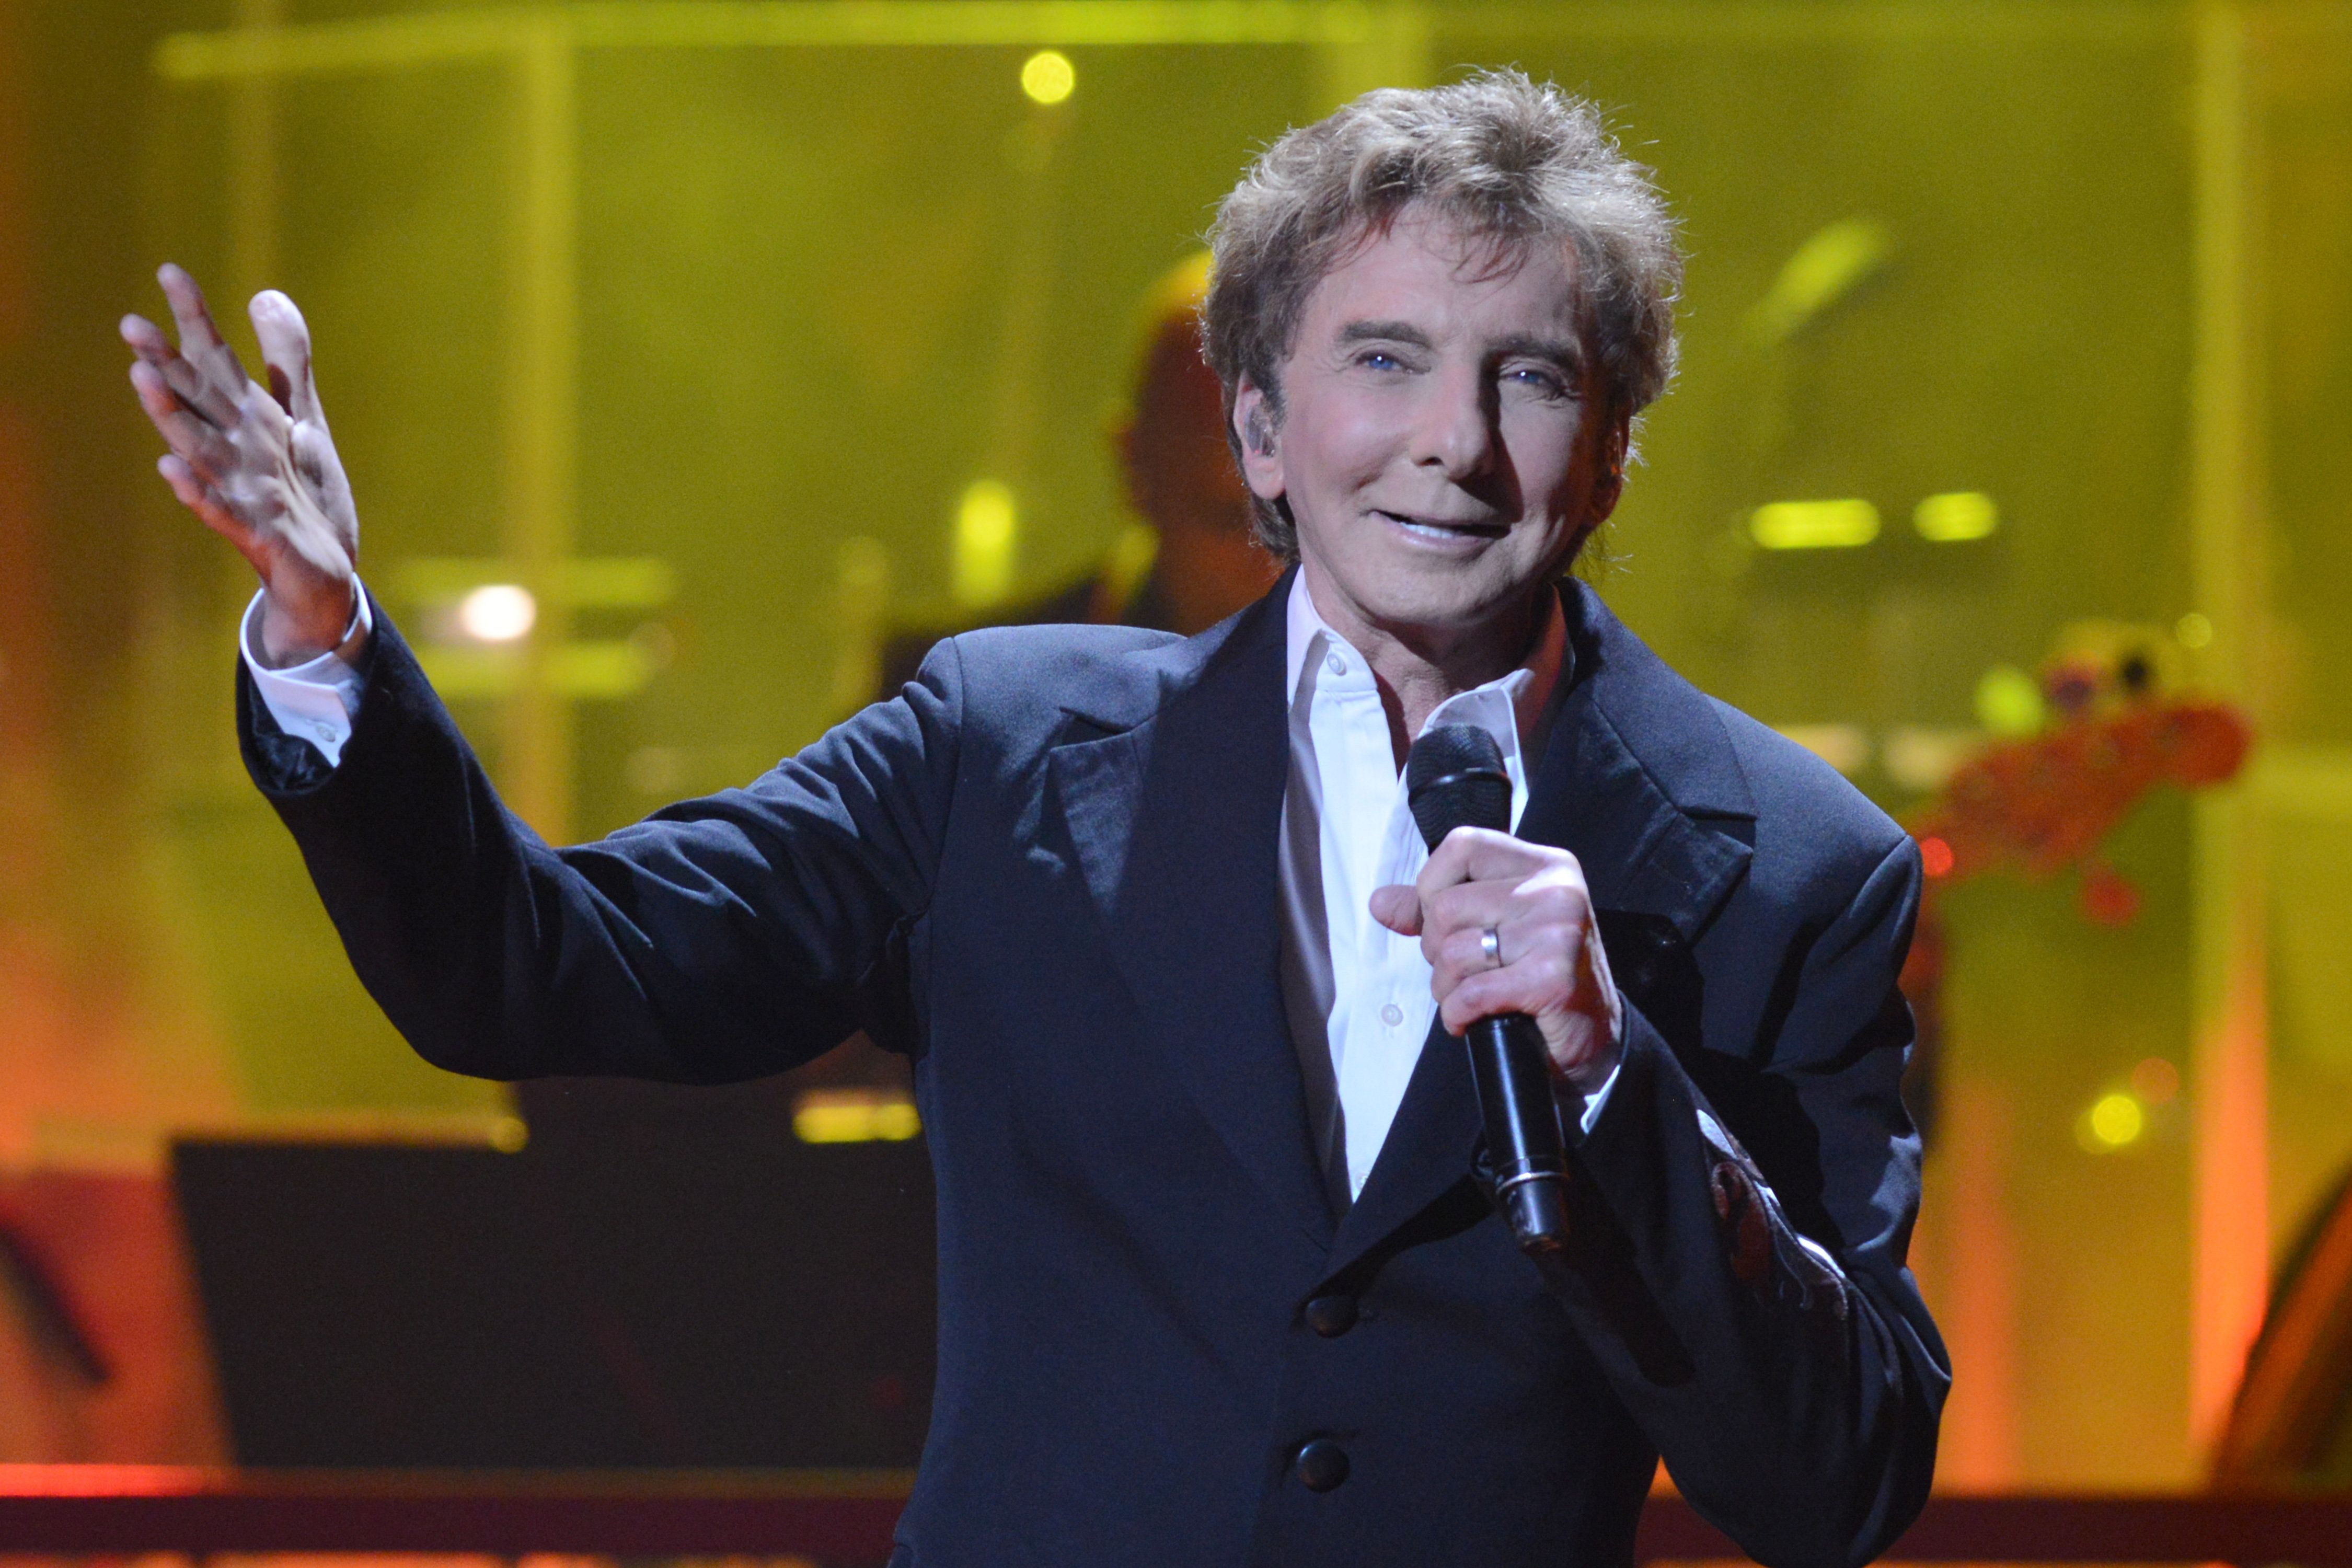 Barry Manilow Comes Out As Gay At Age